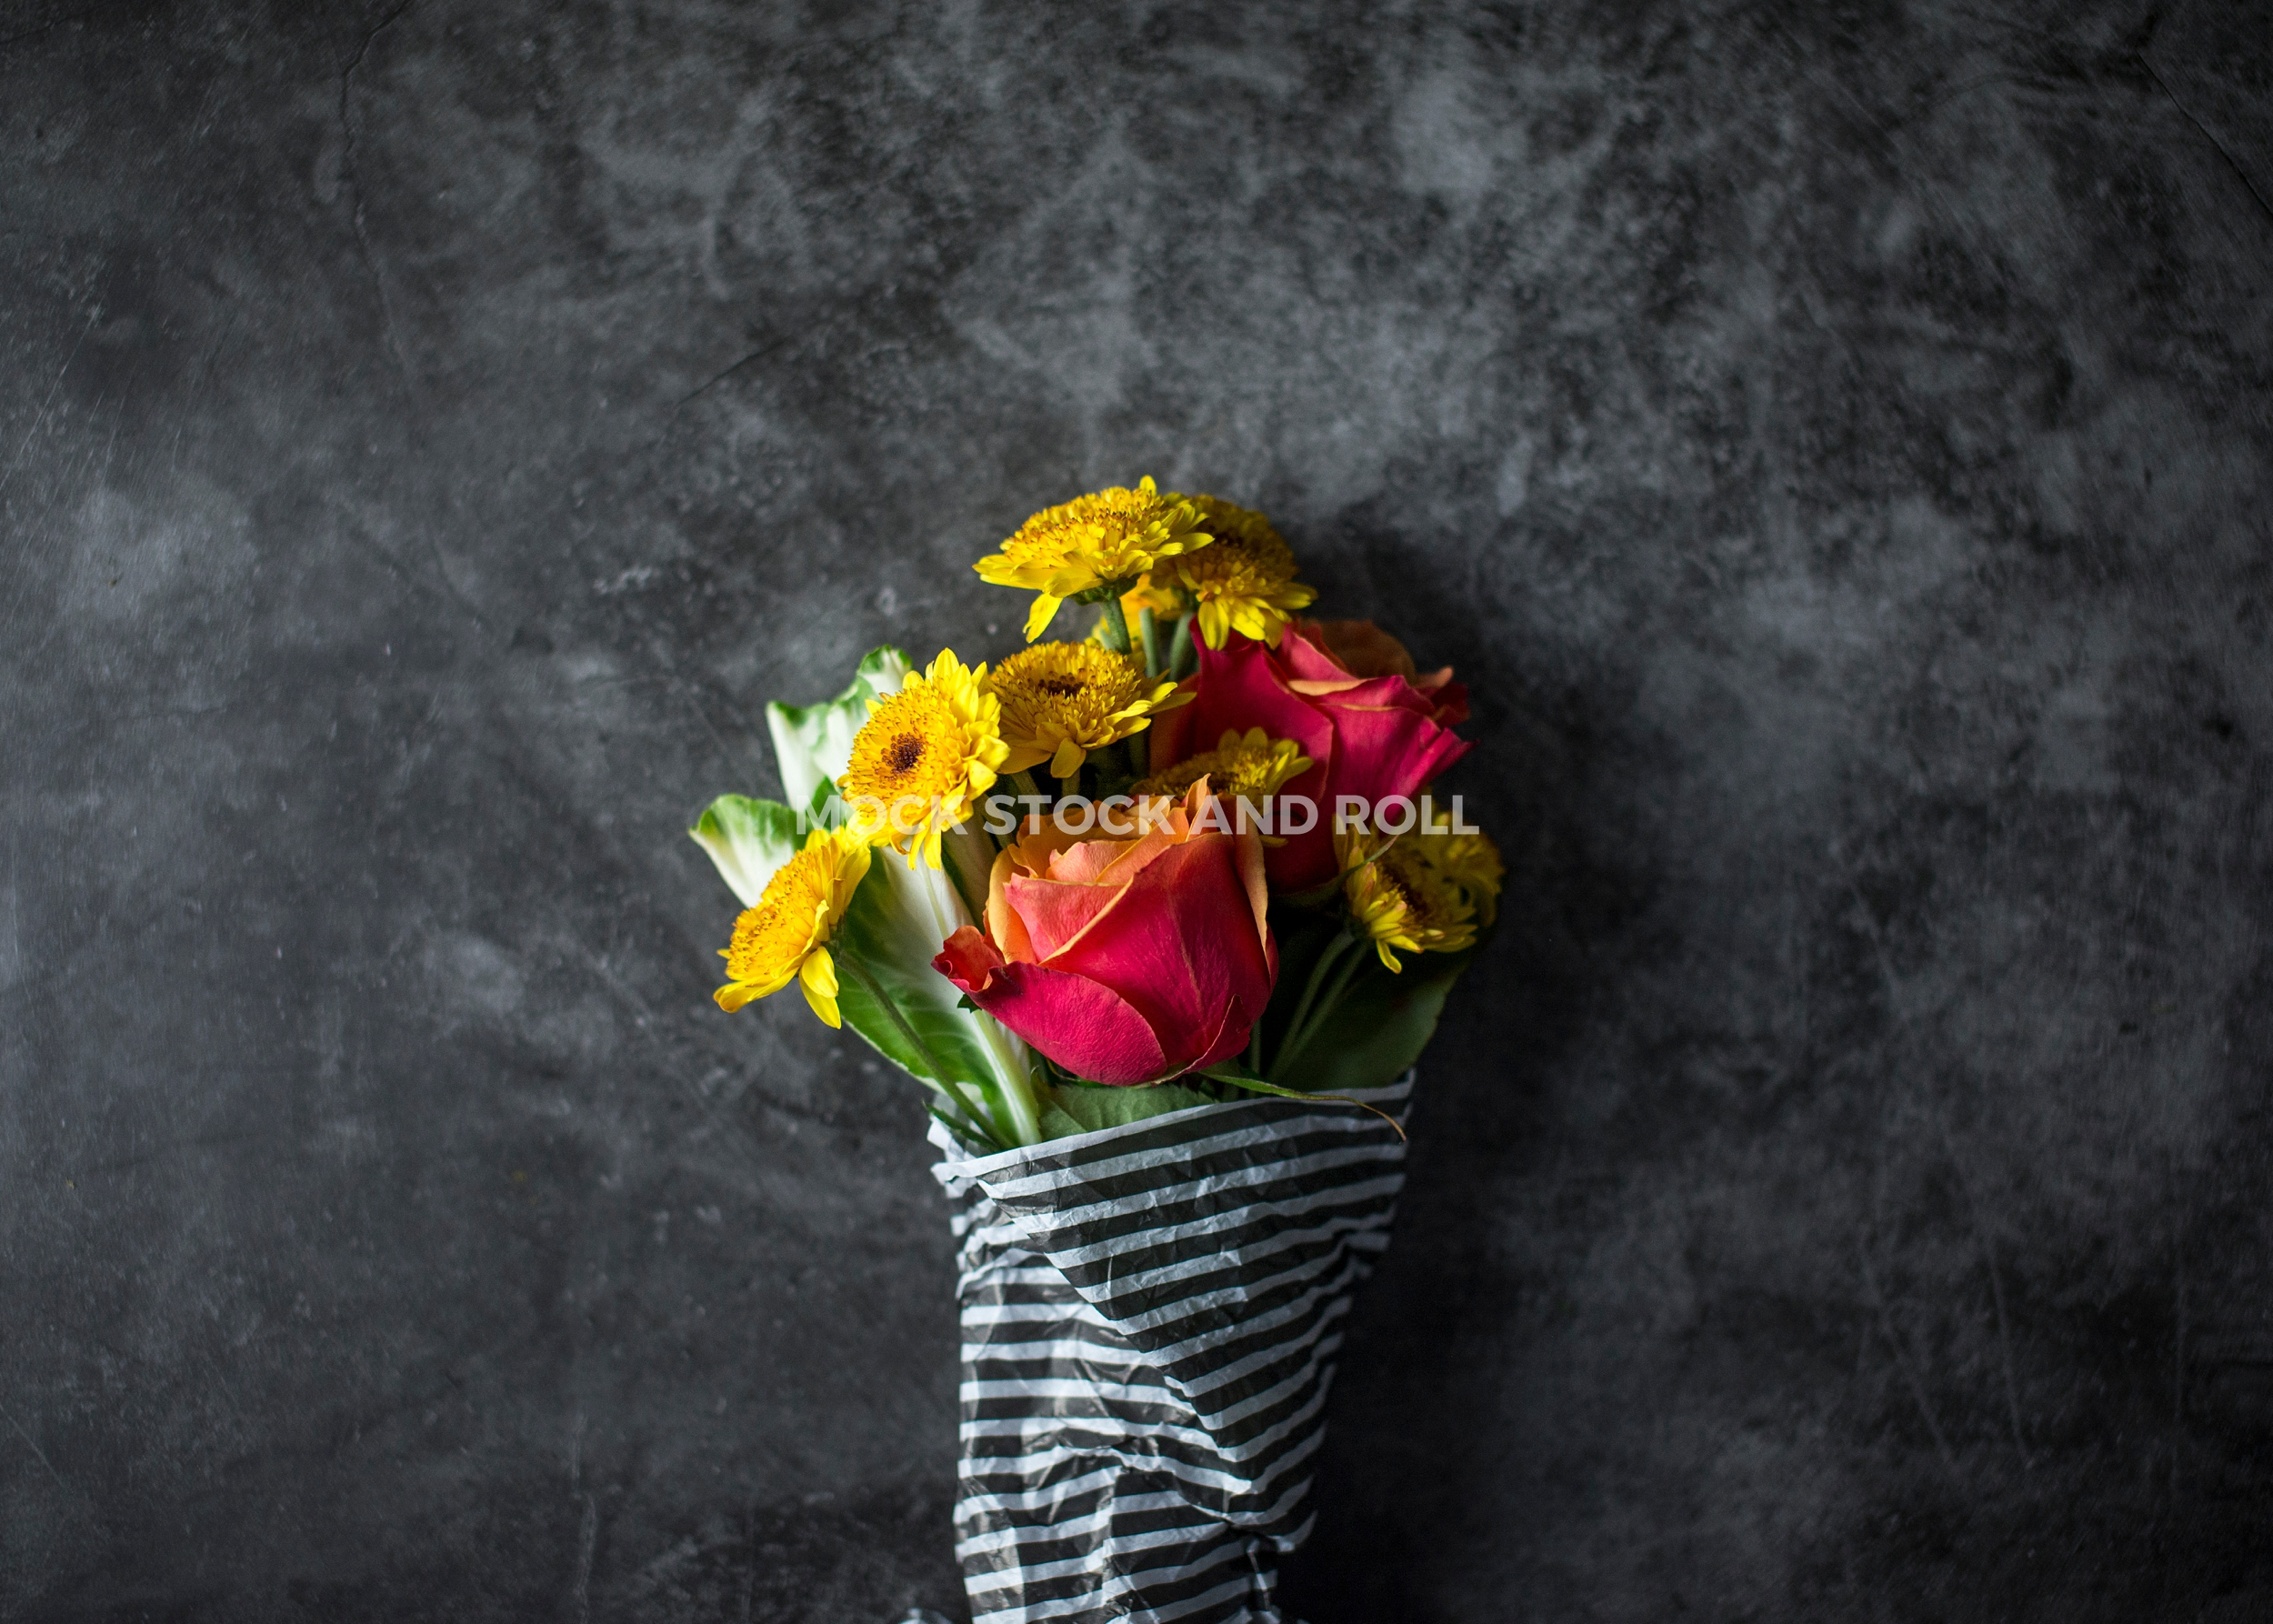 Gorgeous fall flower arrangement in this styled stock photo bundle from Mock Stock and Roll Photography.